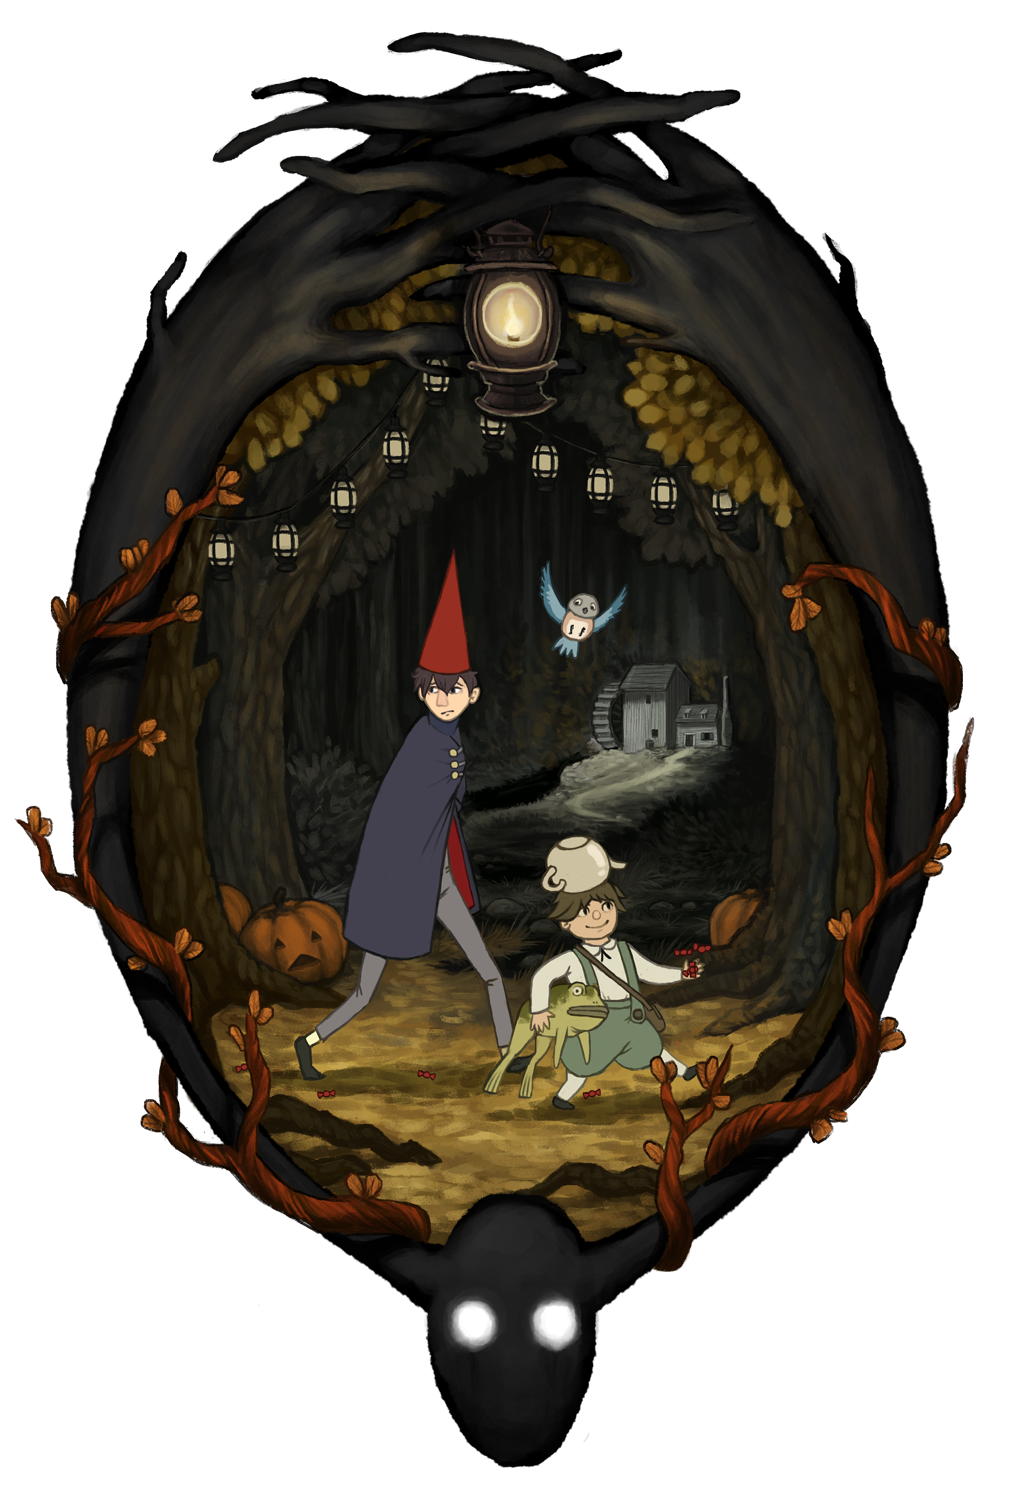 Over the Garden Wall by Kampfkewob